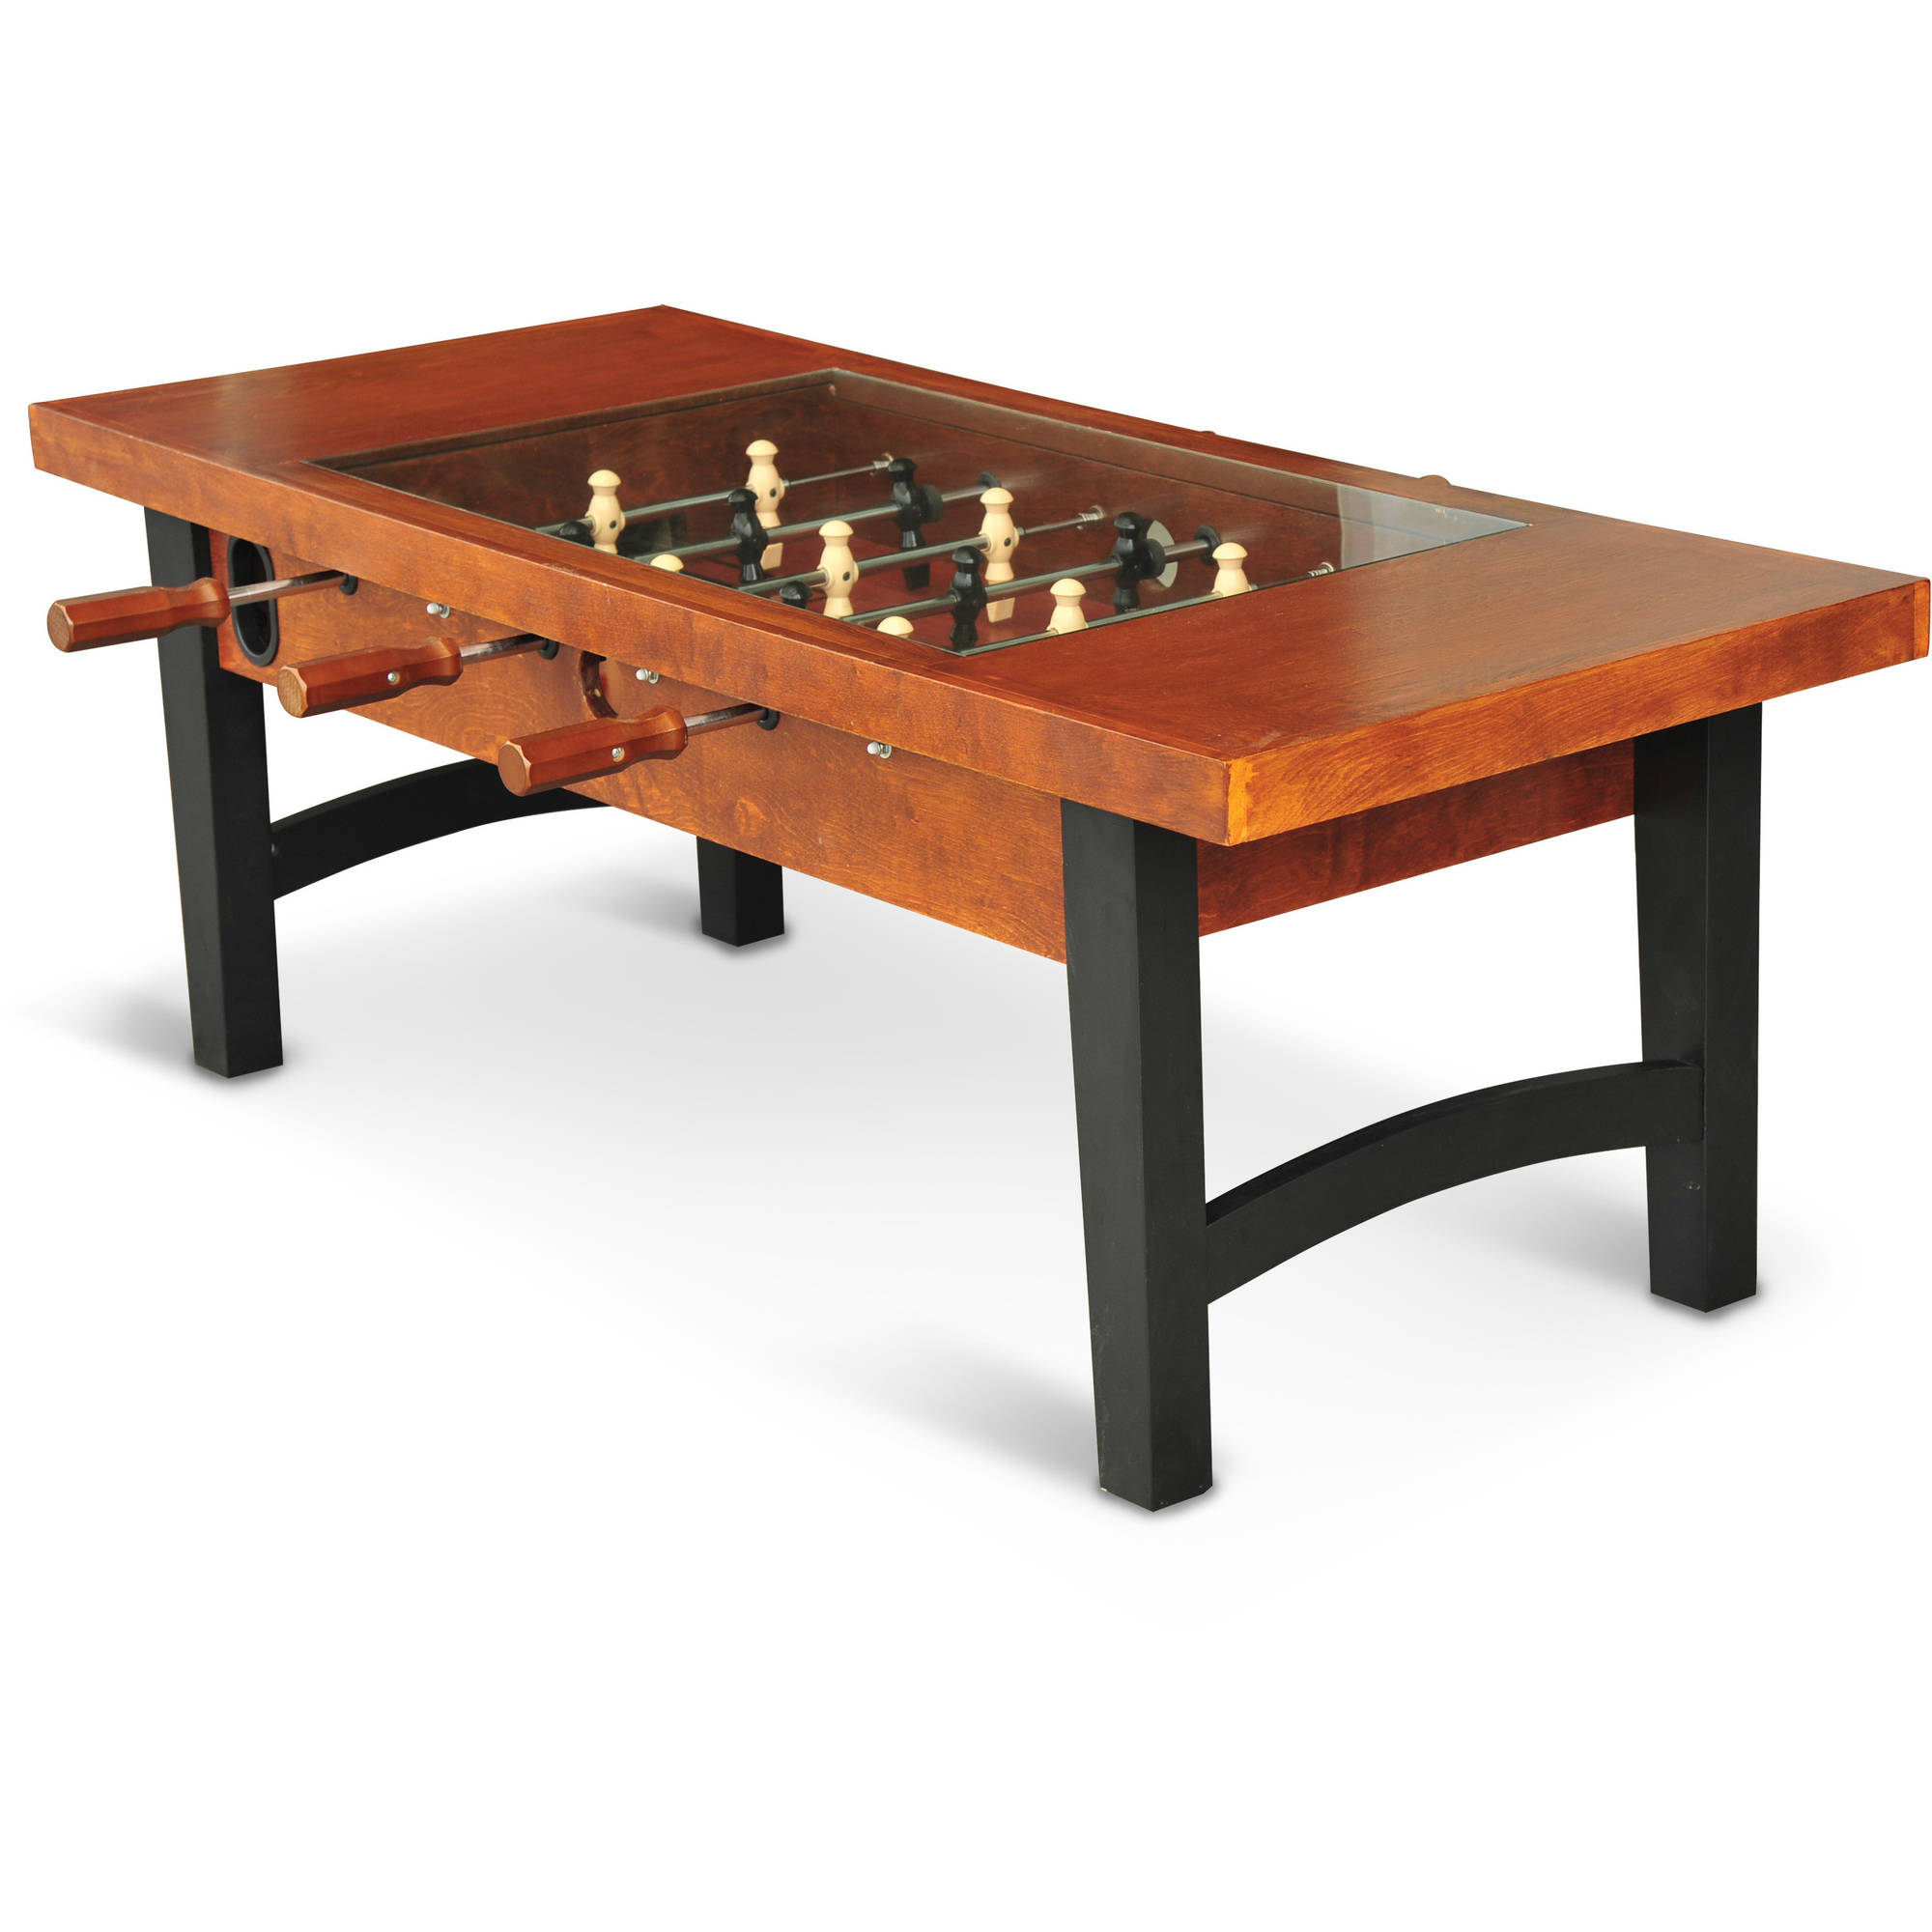 EastPoint Sports Coffee Table Soccer Game, Dark Wood